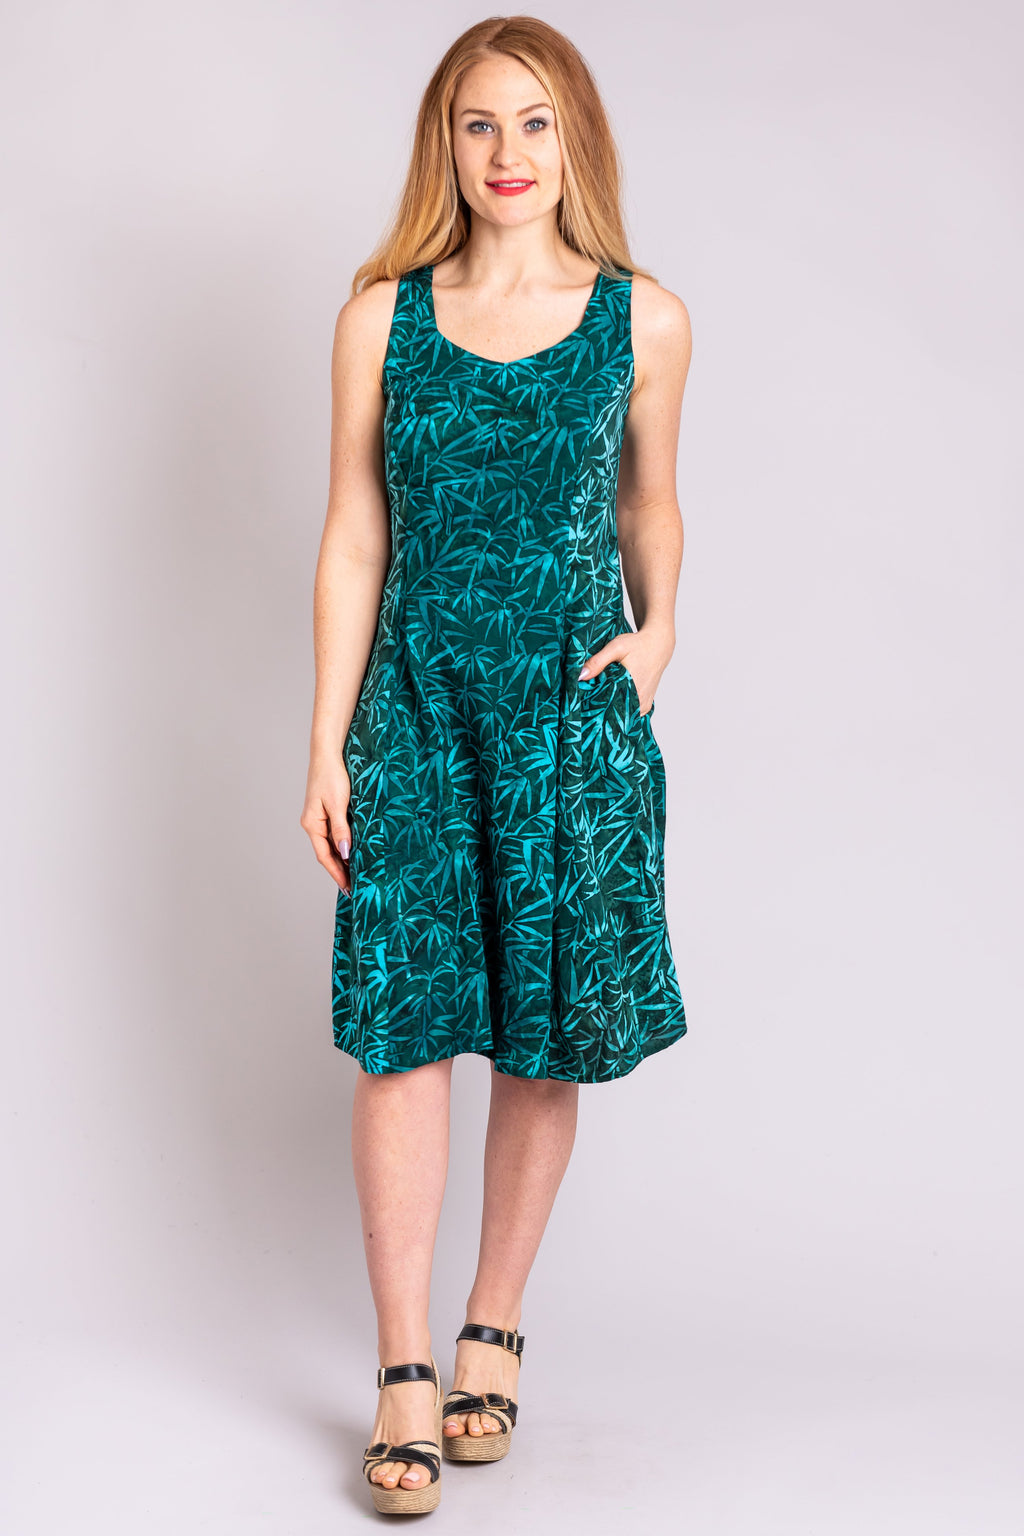 Sweet Sara Dress, Bamboo Forest